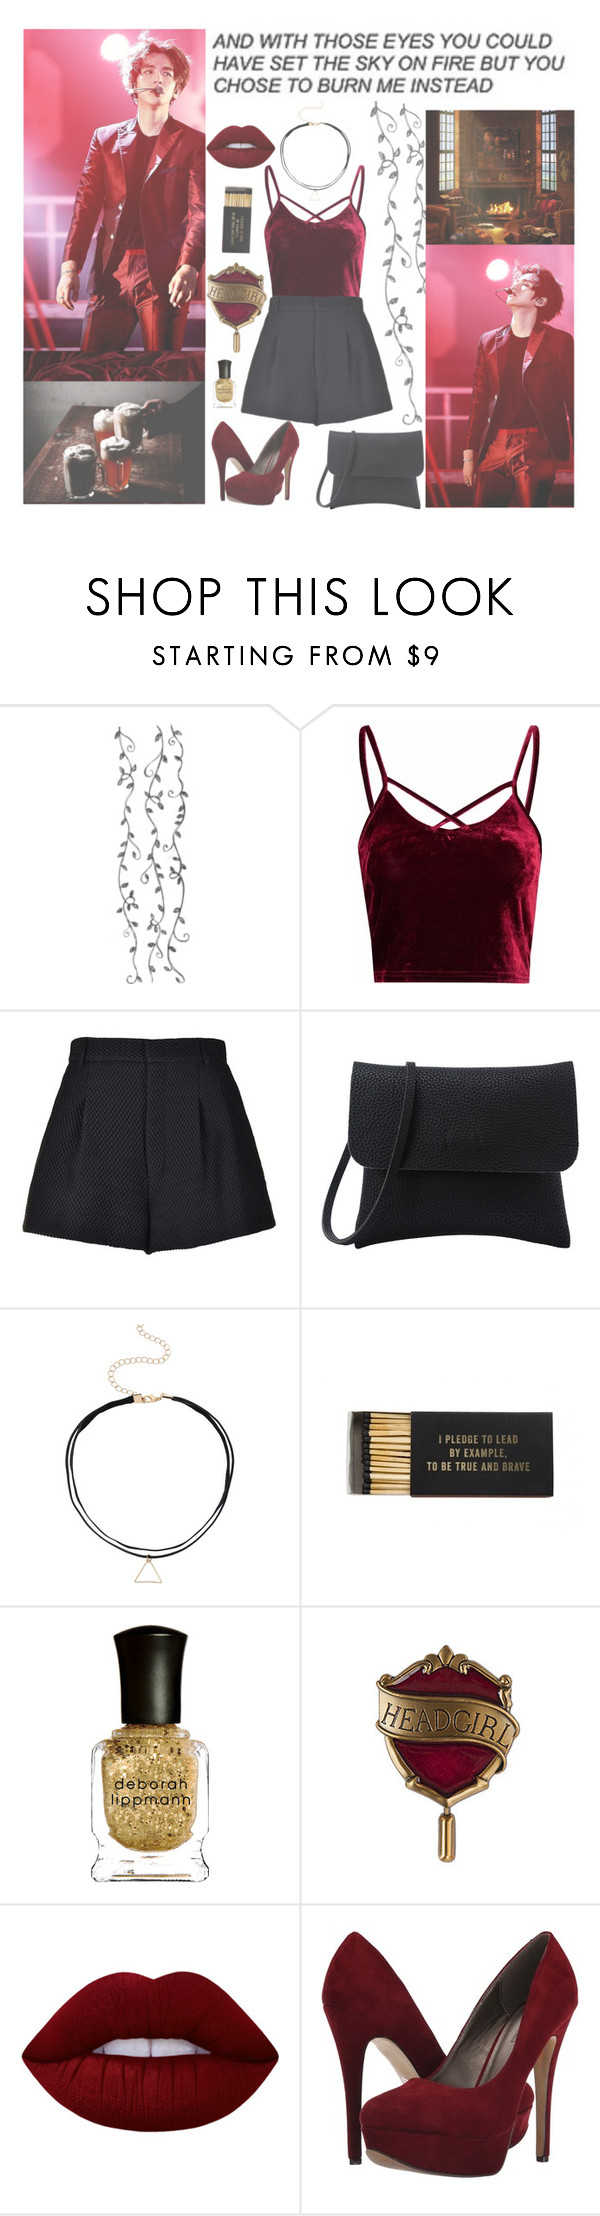 """***Gryffindor - Baekhyun***"" by milda-mint on Polyvore featuring Glamorous, RED Valentino, Jayson Home, Deborah Lippmann, Lime Crime and Michael Antonio"